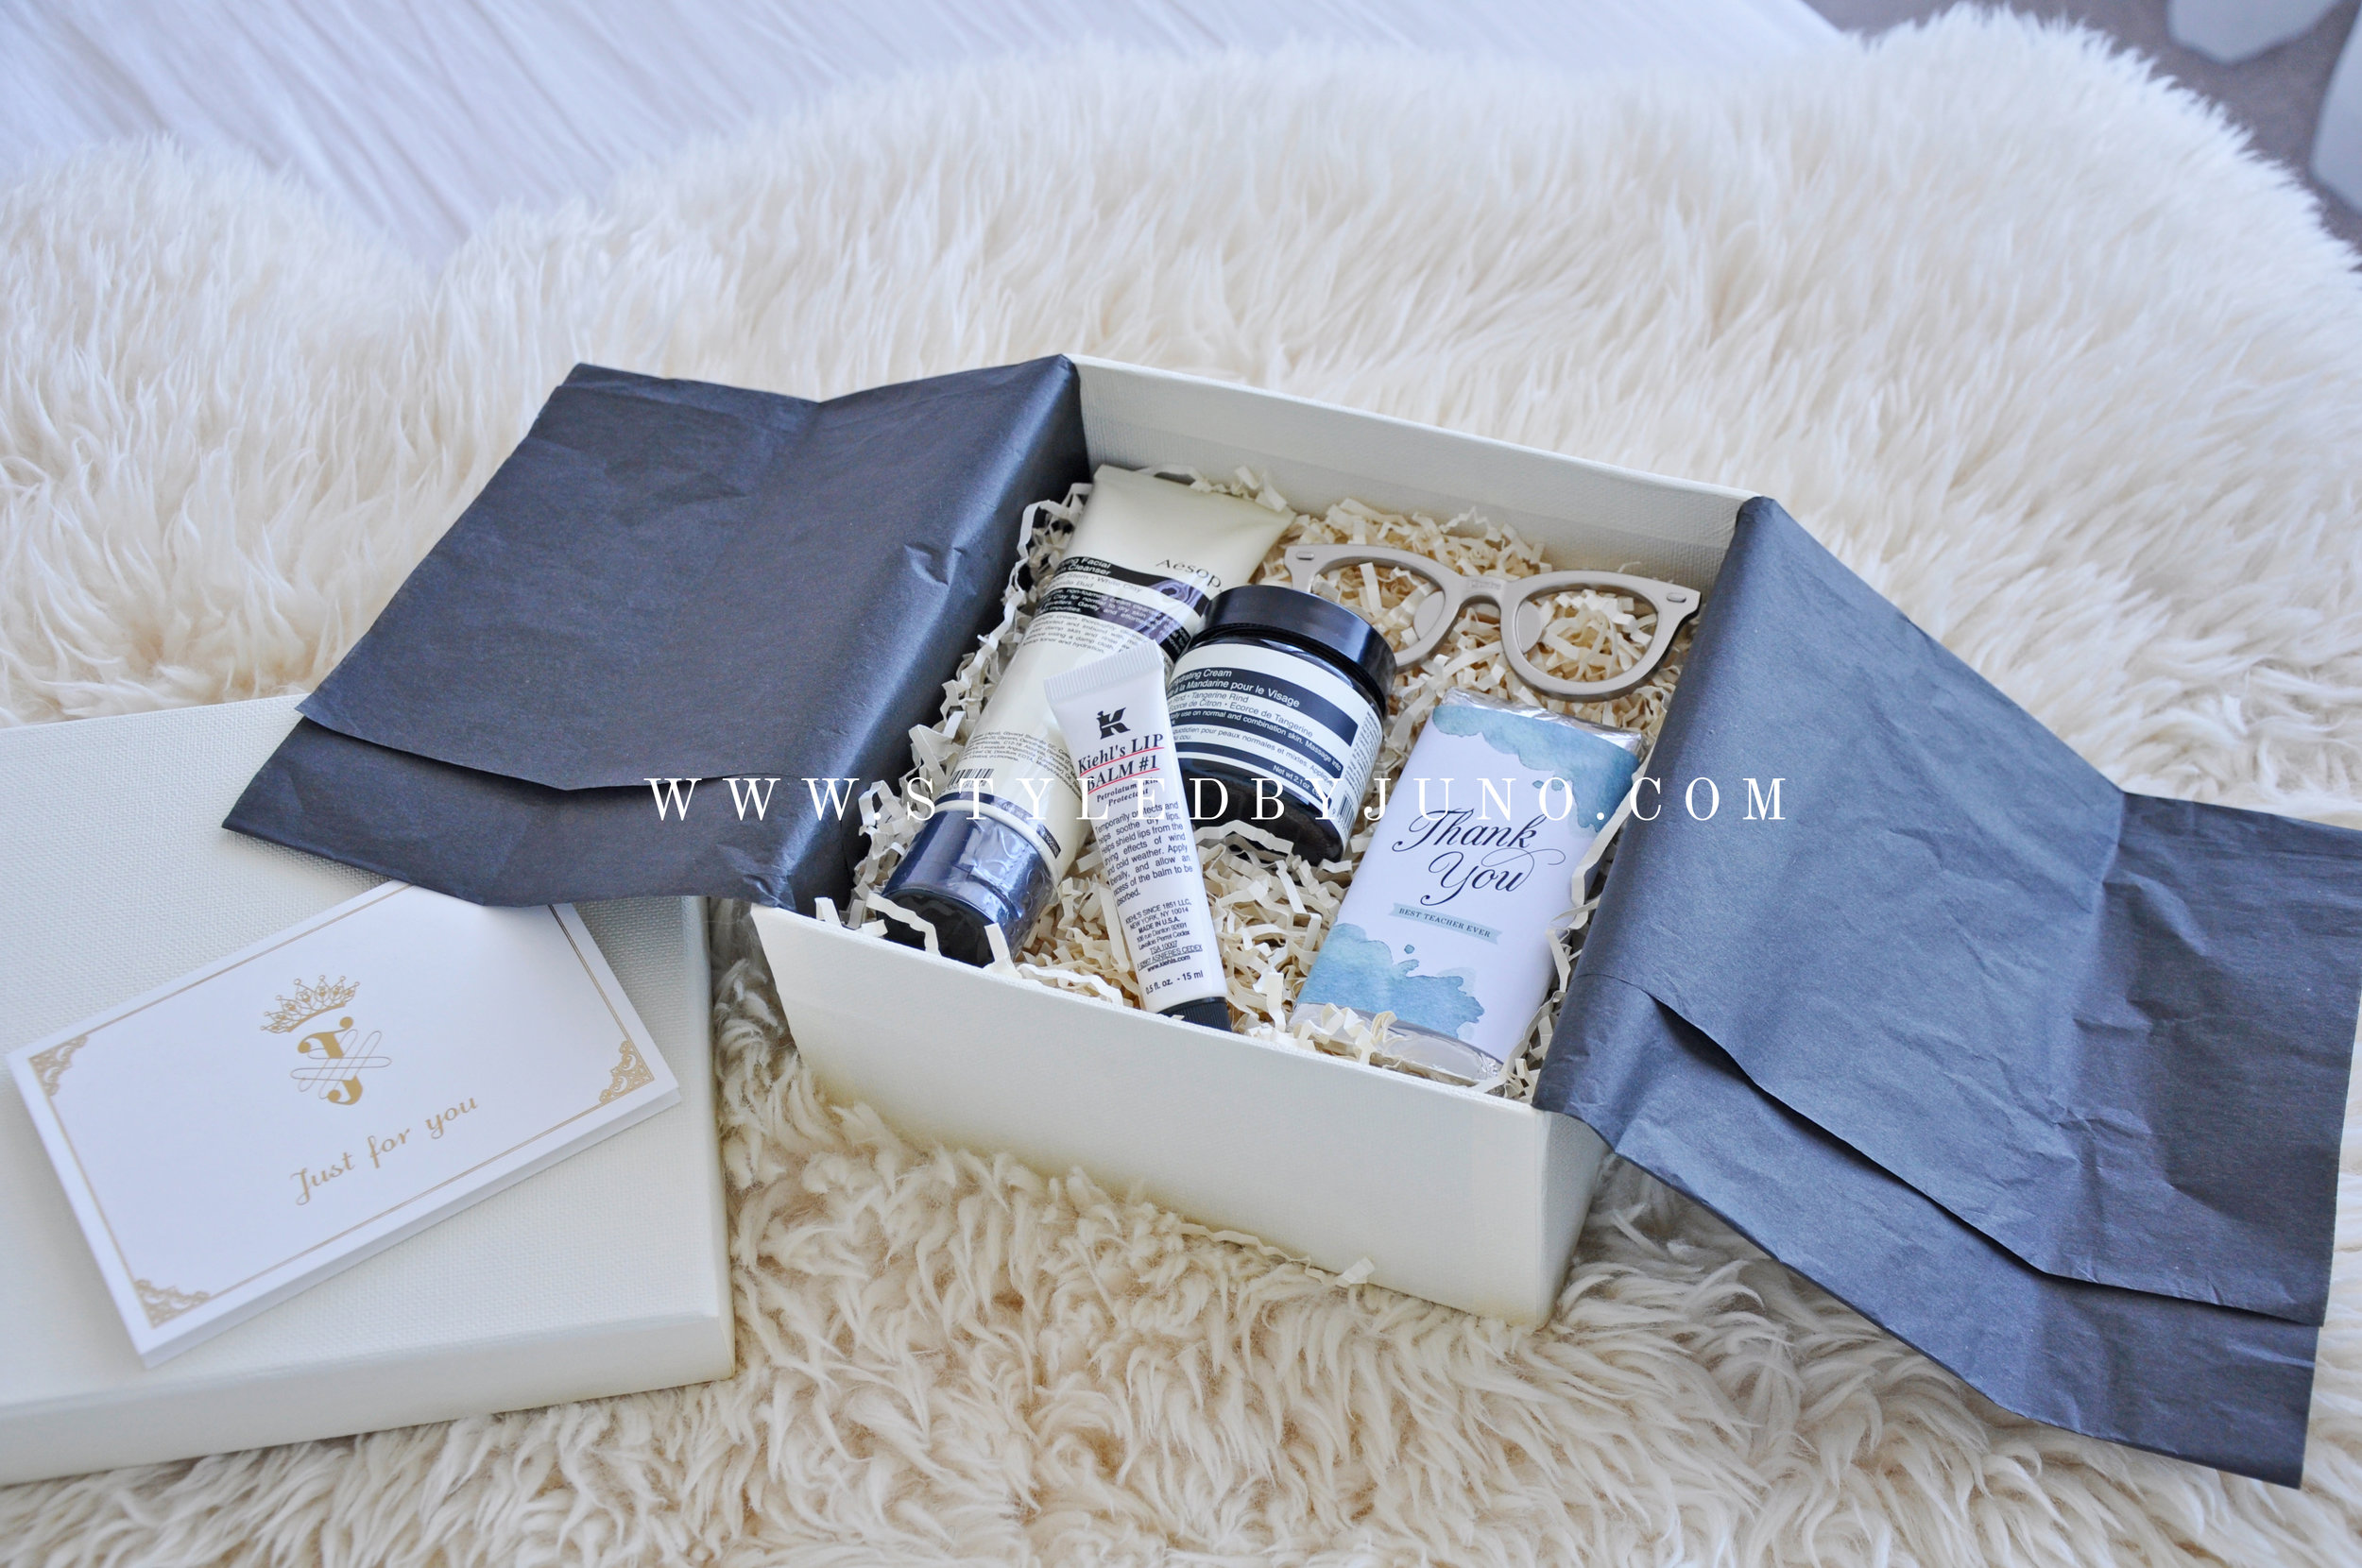 SHOP GIFT BOX  - If you are looking for a gift for your loved ones, friends or family, please visit our  'SHOP' .